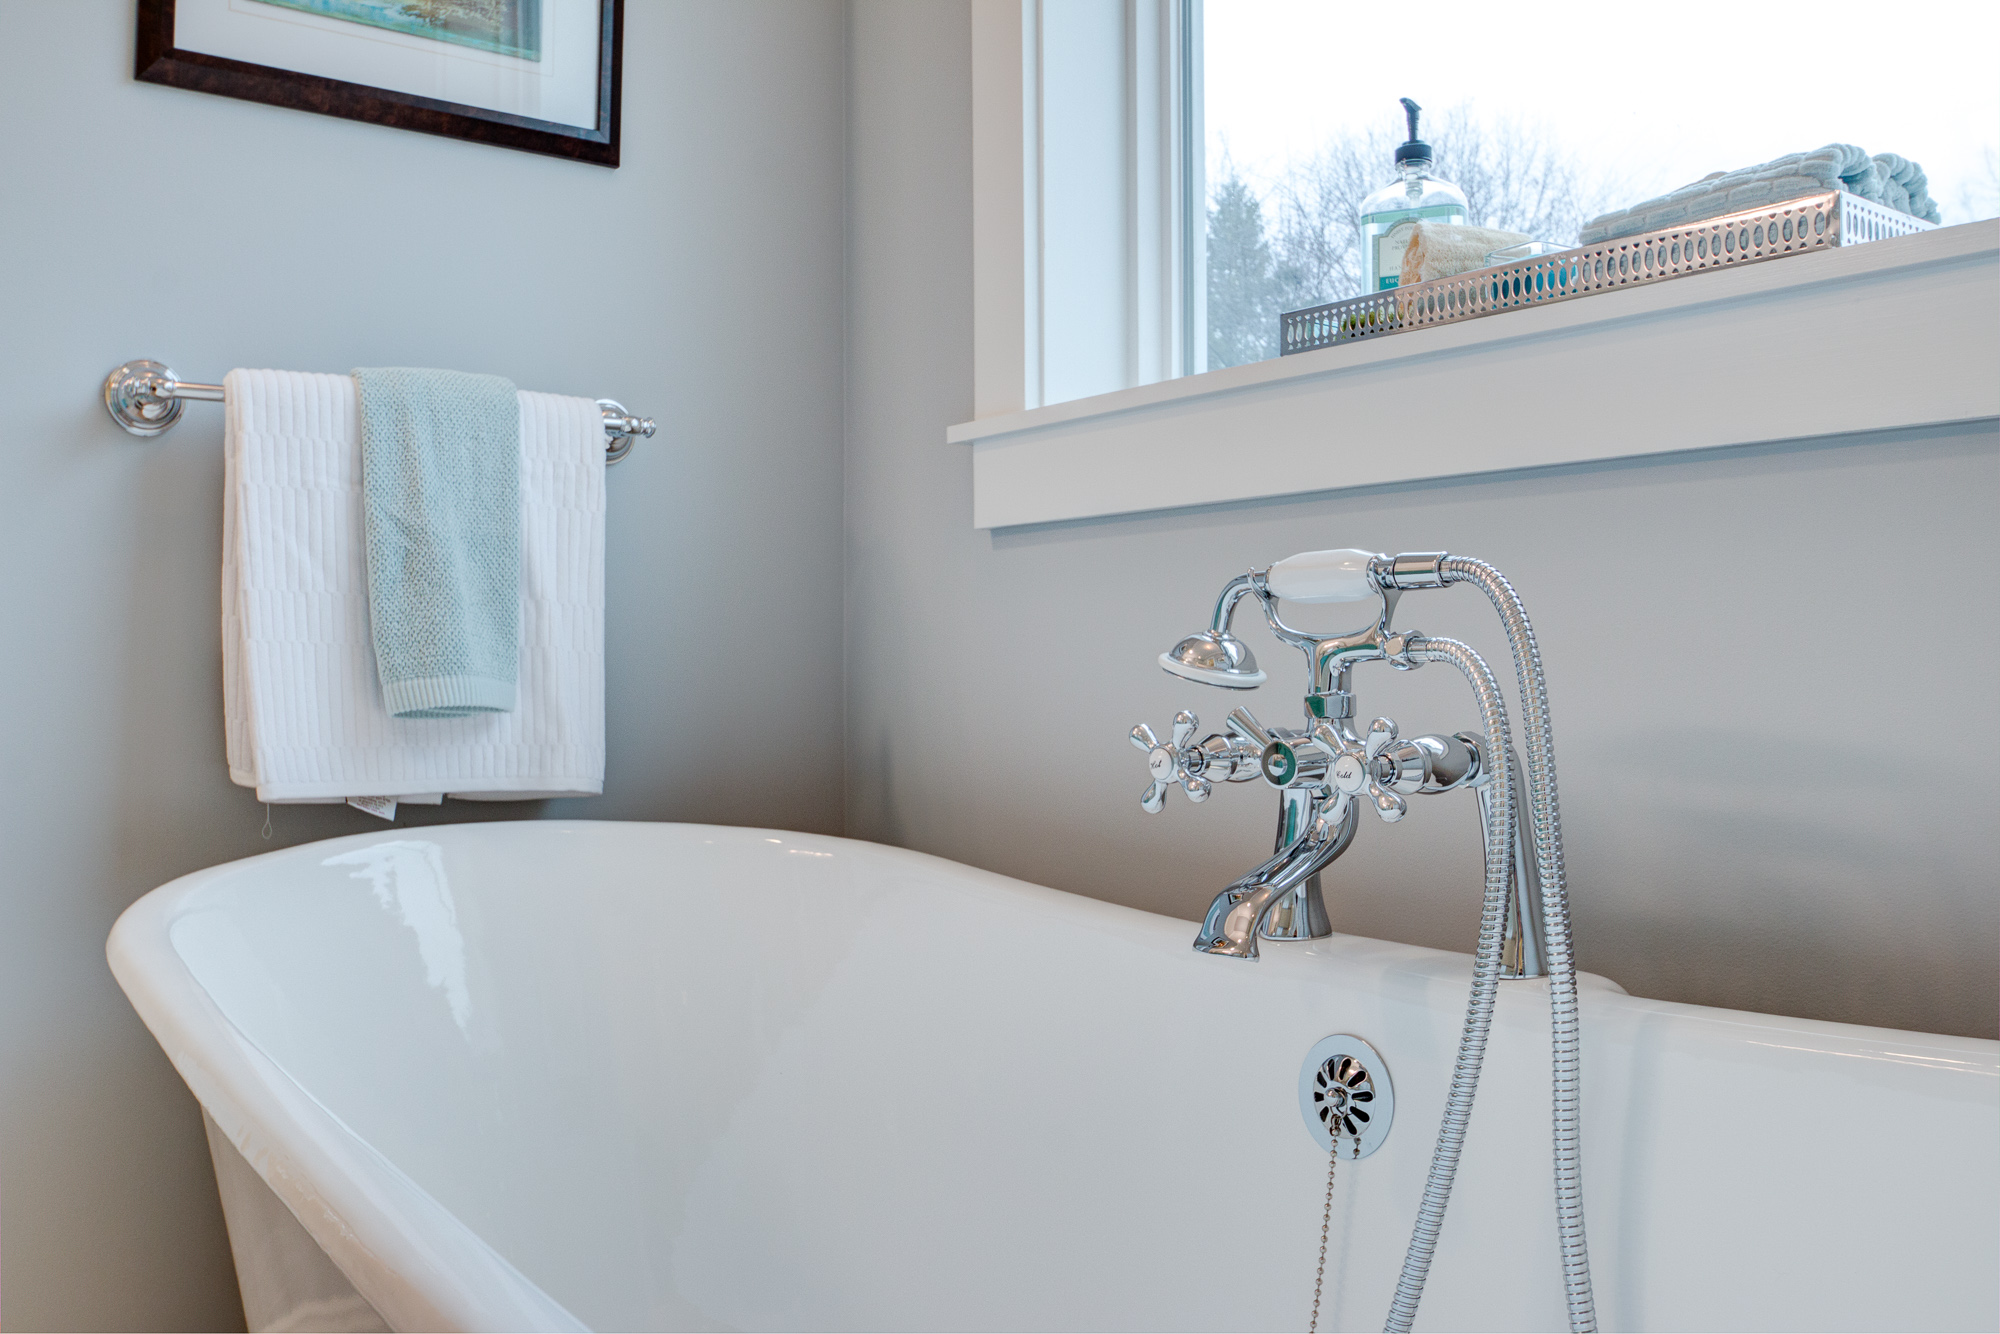 Real Estate Photography: Claw Foot Double Slipper Soaking Tub